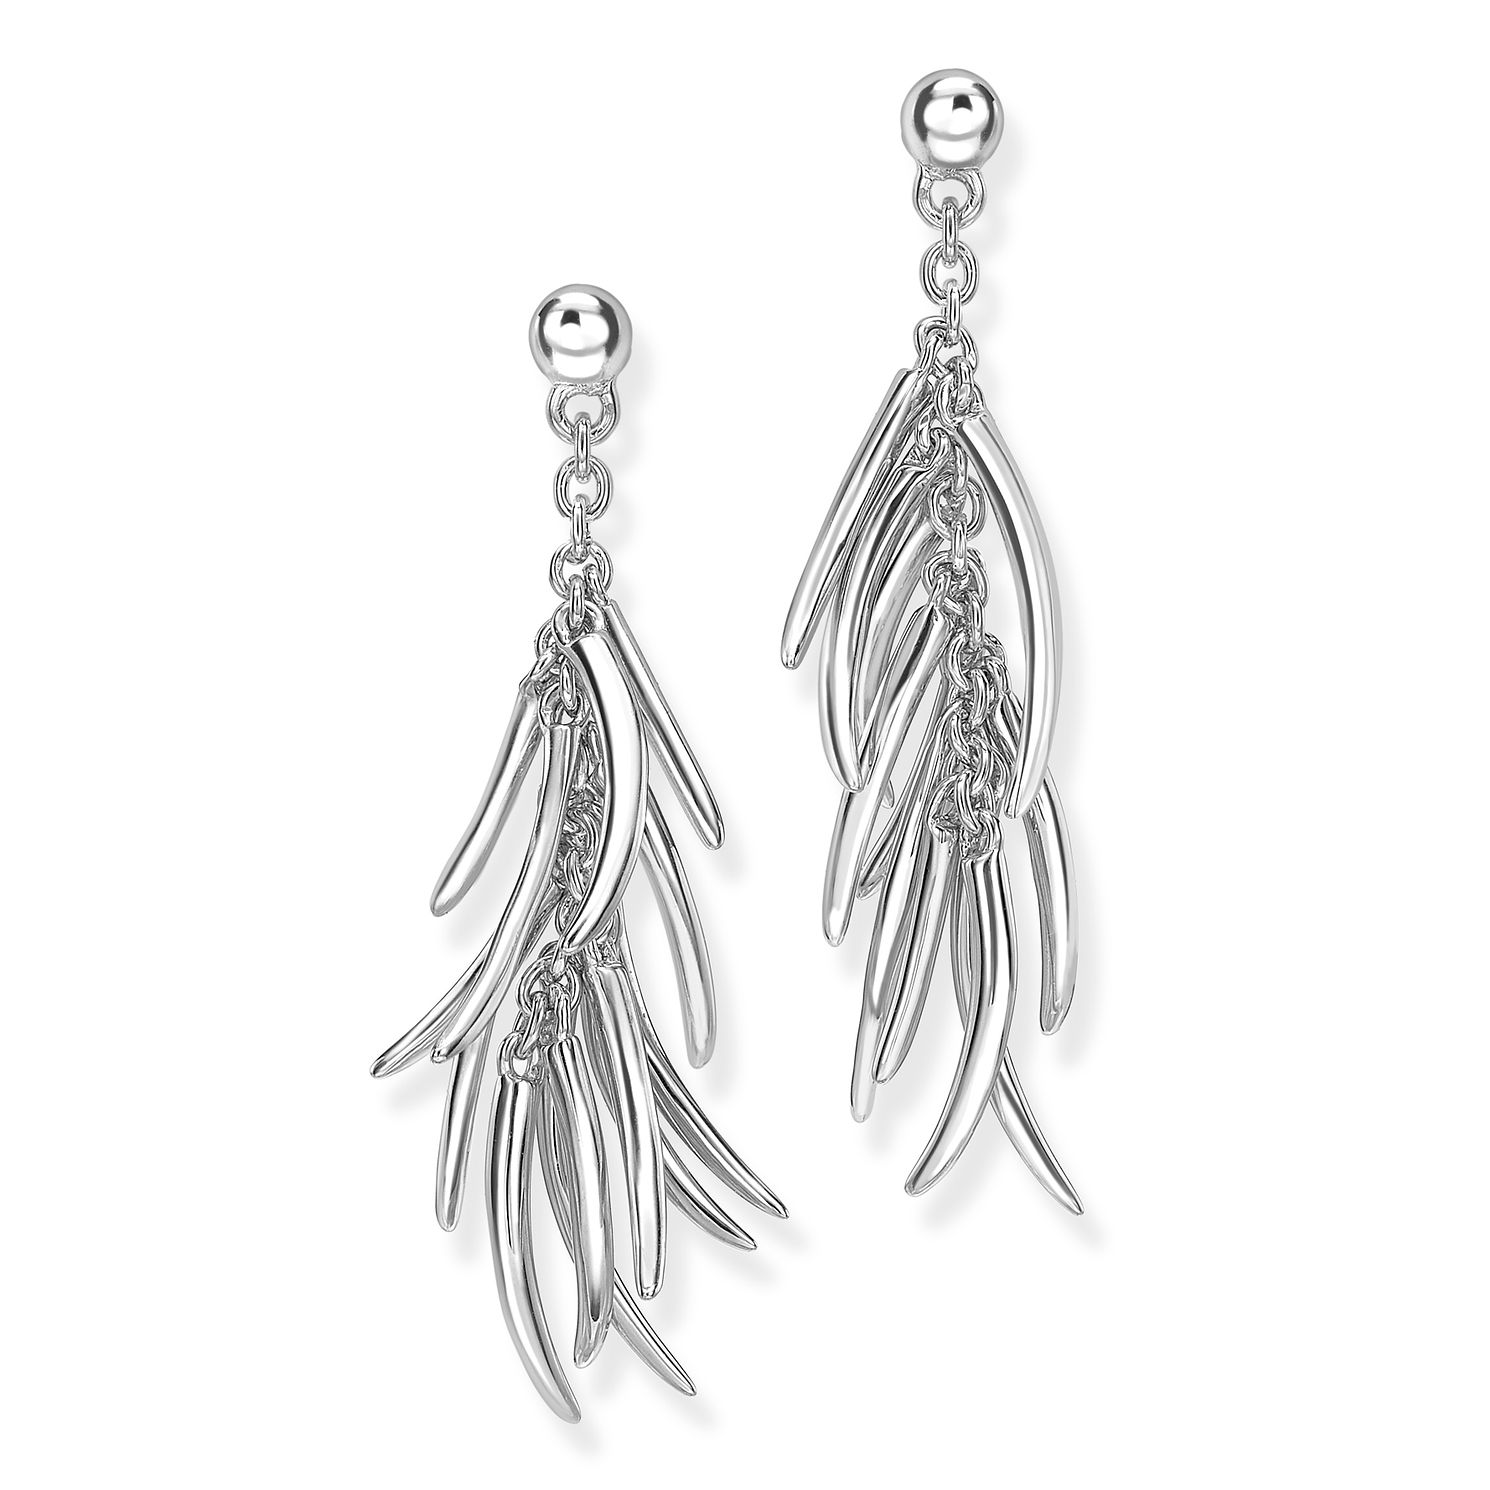 Rachel Galley Silver 925 Molto Drop Earrings - Product number 1376764